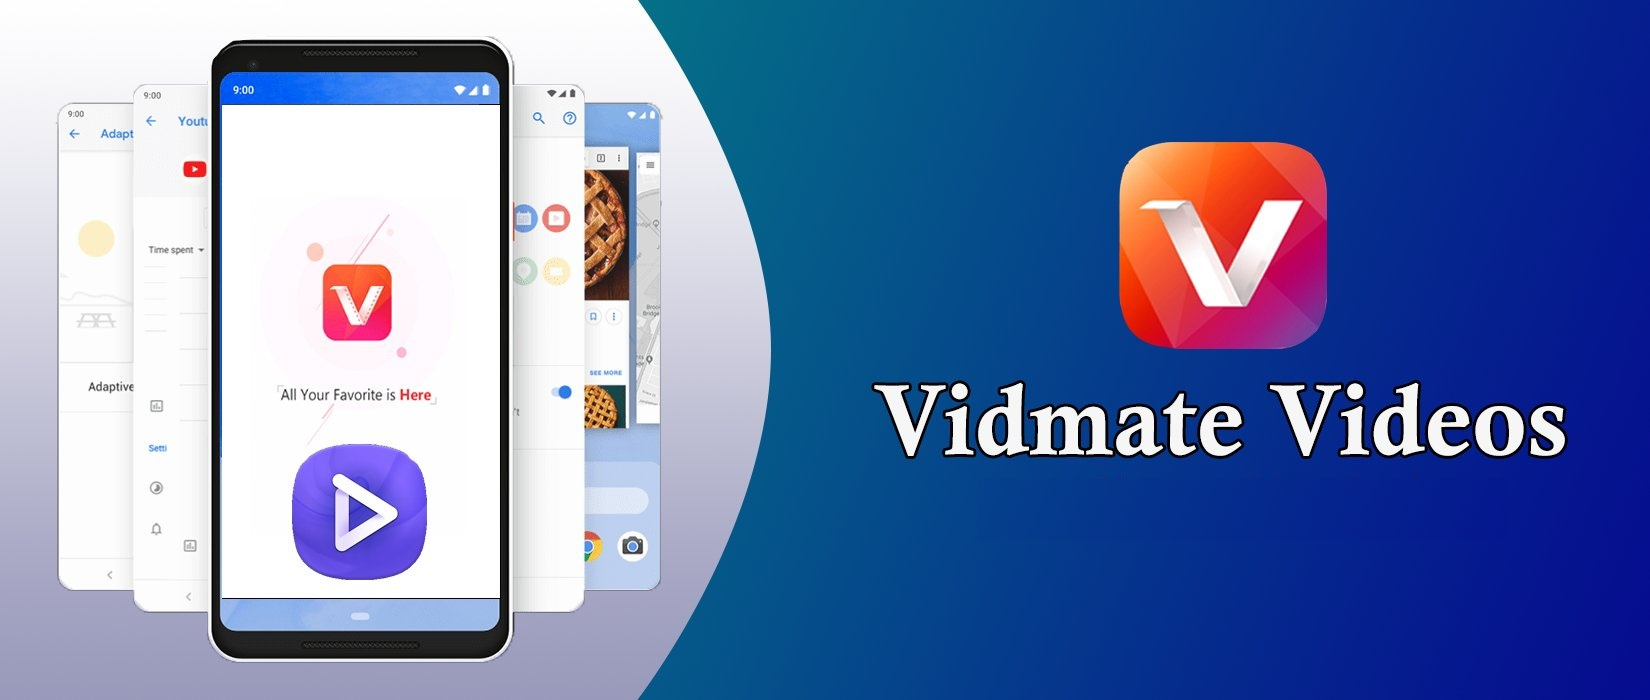 Download the Vidmate Downloader for Smooth Video Downloading Experience